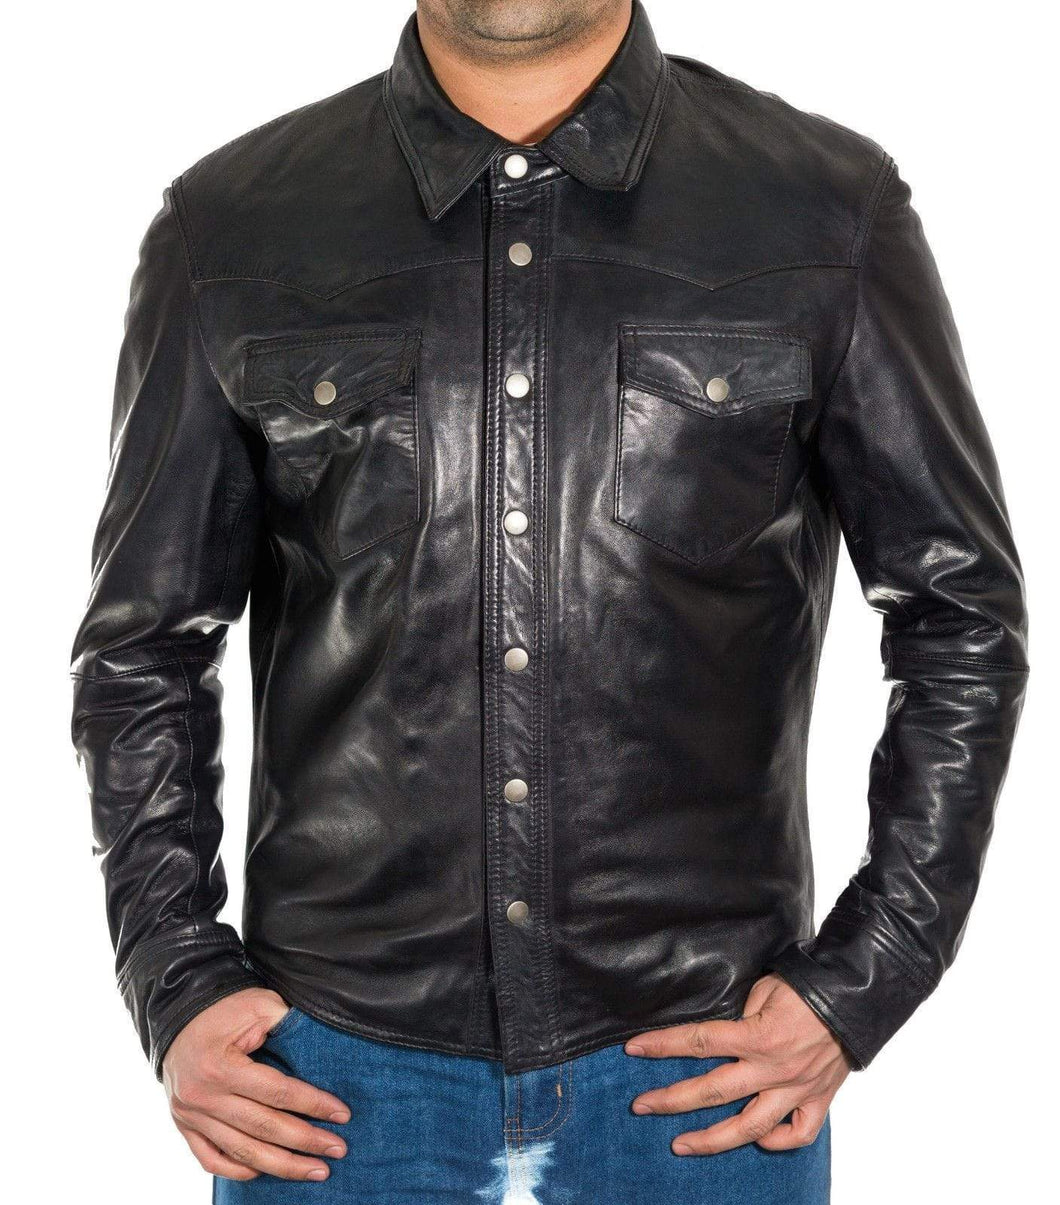 Men's Genuine Black Lambskin Leather Shirts Slim fit Police Military Style Shirt - leathersguru